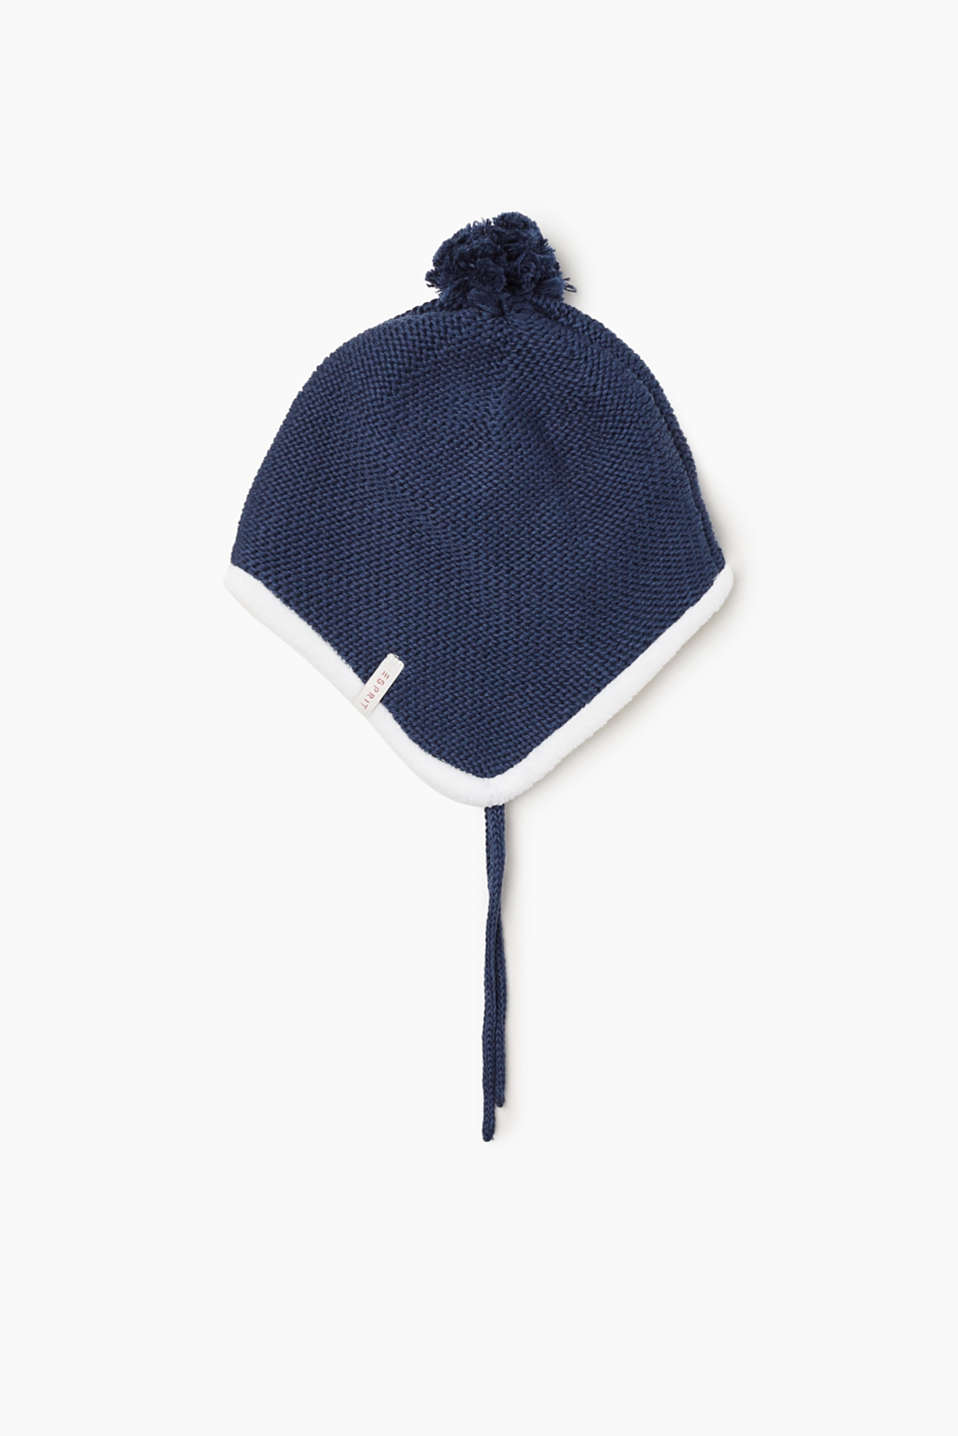 This knit cotton hat with a pompom and warm lining keeps ears warm and looks cute.